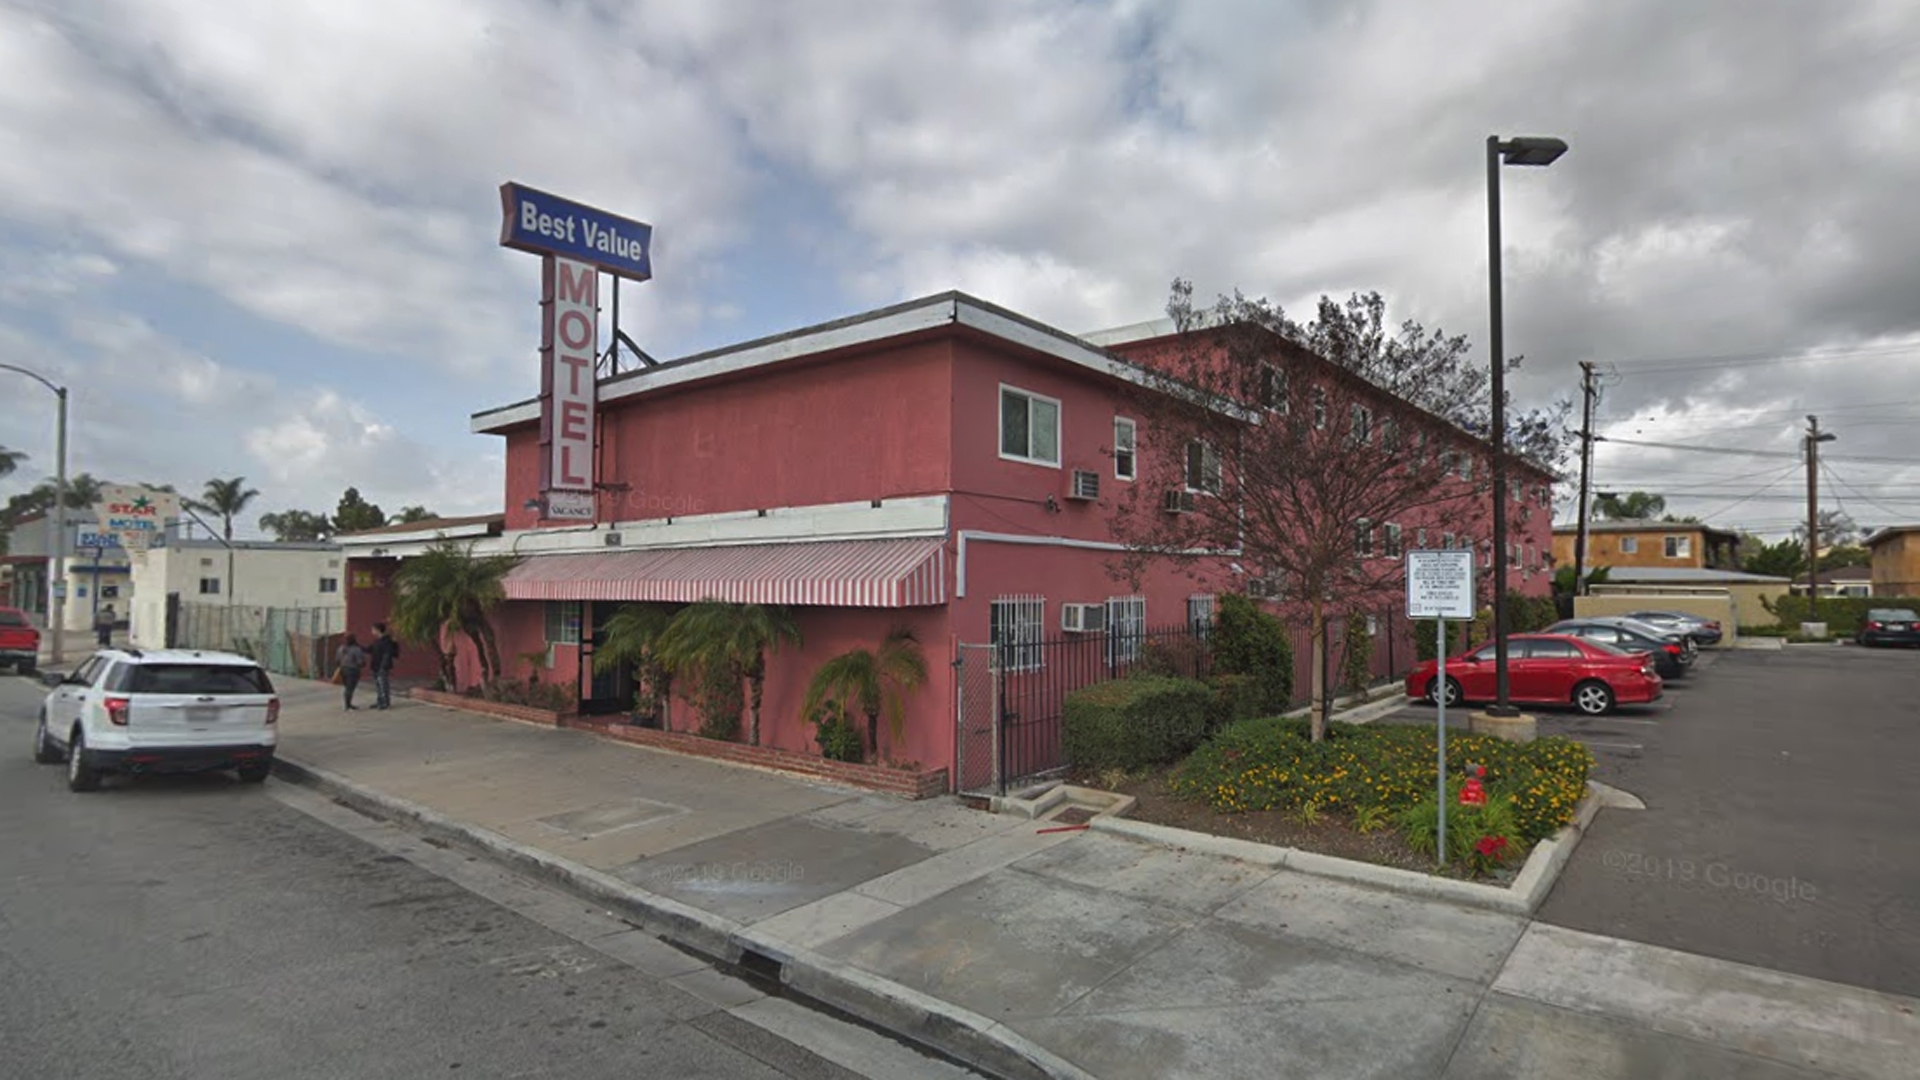 The Best Value Motel, 11907 Firestone Blvd. in Norwalk, as pictured in a Google Street View image in January of 2019.